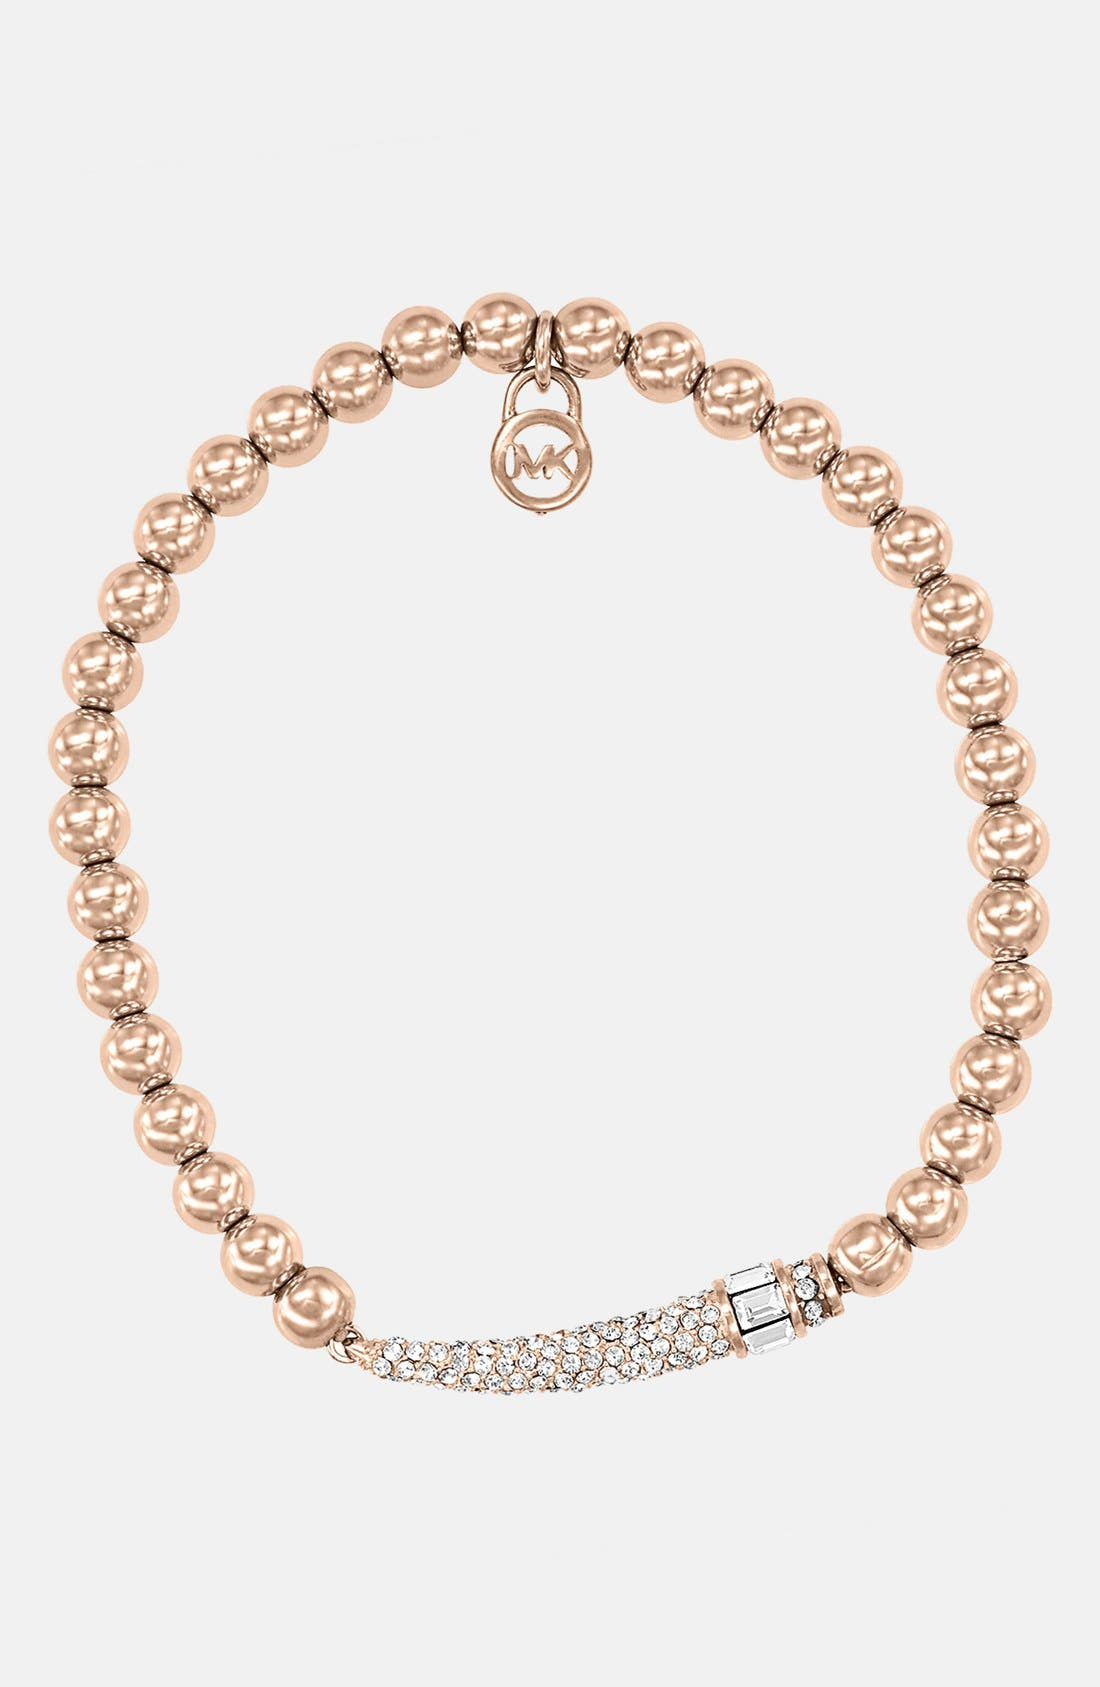 Alternate Image 1 Selected - Michael Kors 'Modernist Glitz' Pavé Horn Stretch Bracelet